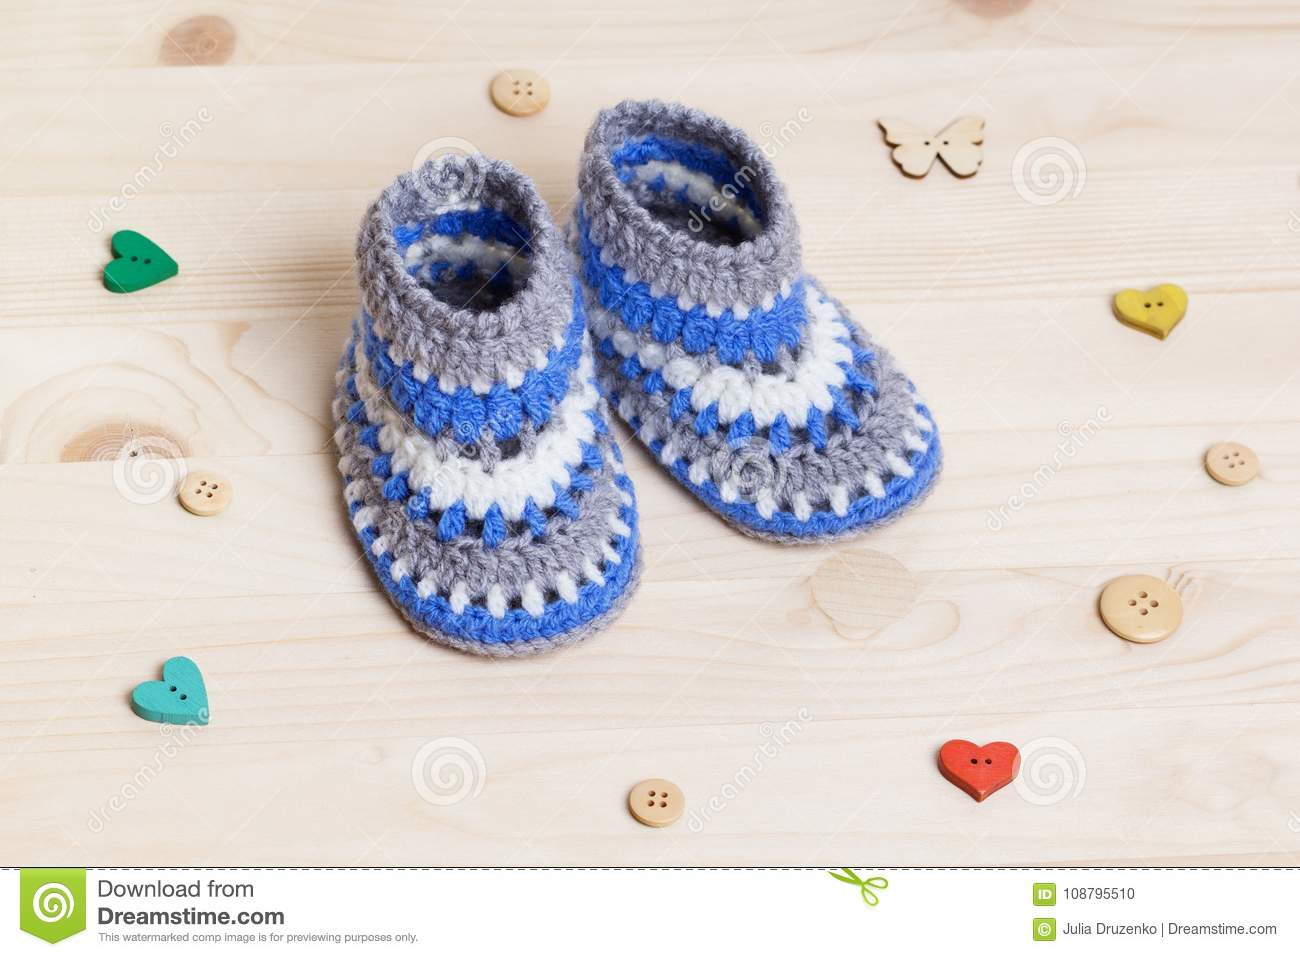 1c6ec3583354 Cute Handmade blue Baby Booties Crochet on wooden background with wooden  buttons